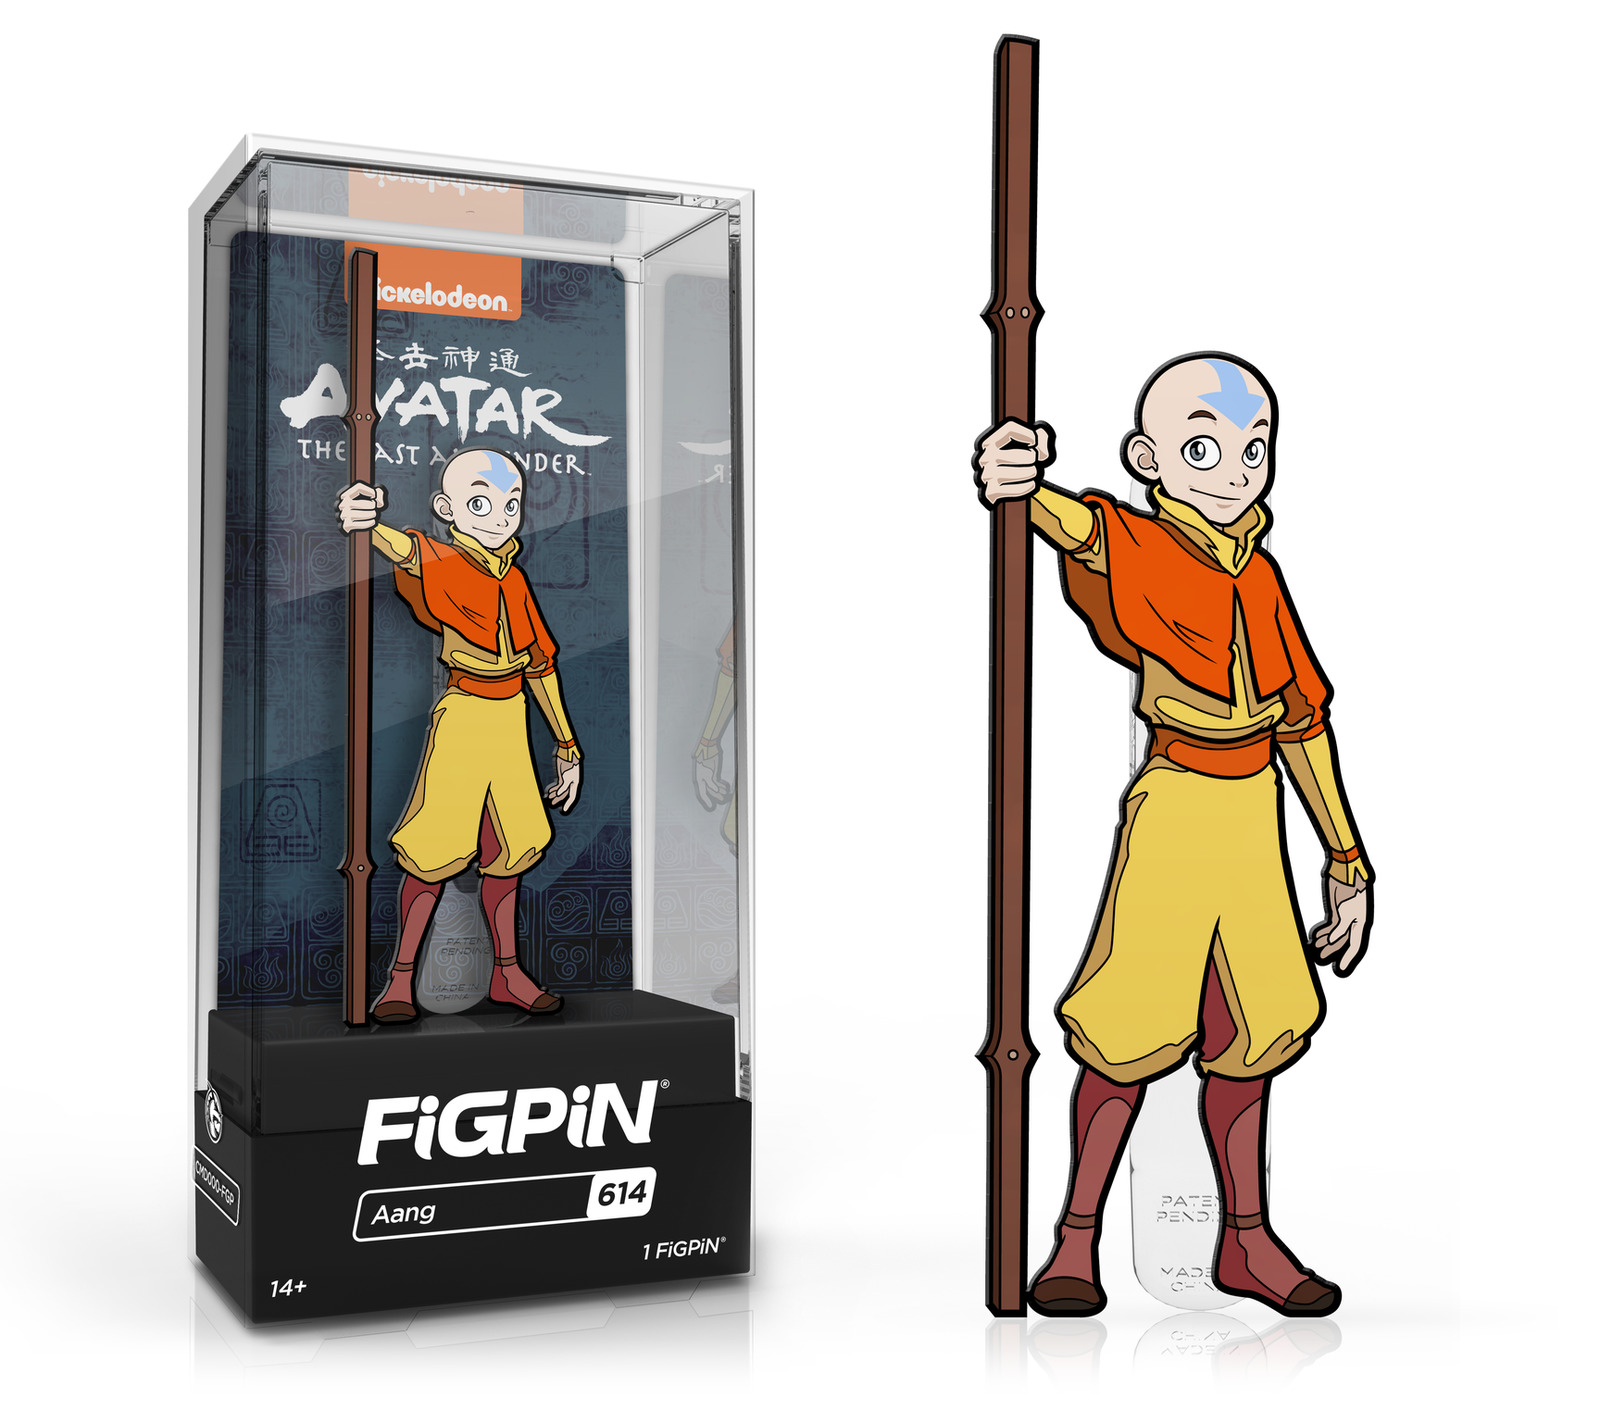 Avatar: The Last Airbender - Aang (#614) - Collectors FiGPiN image